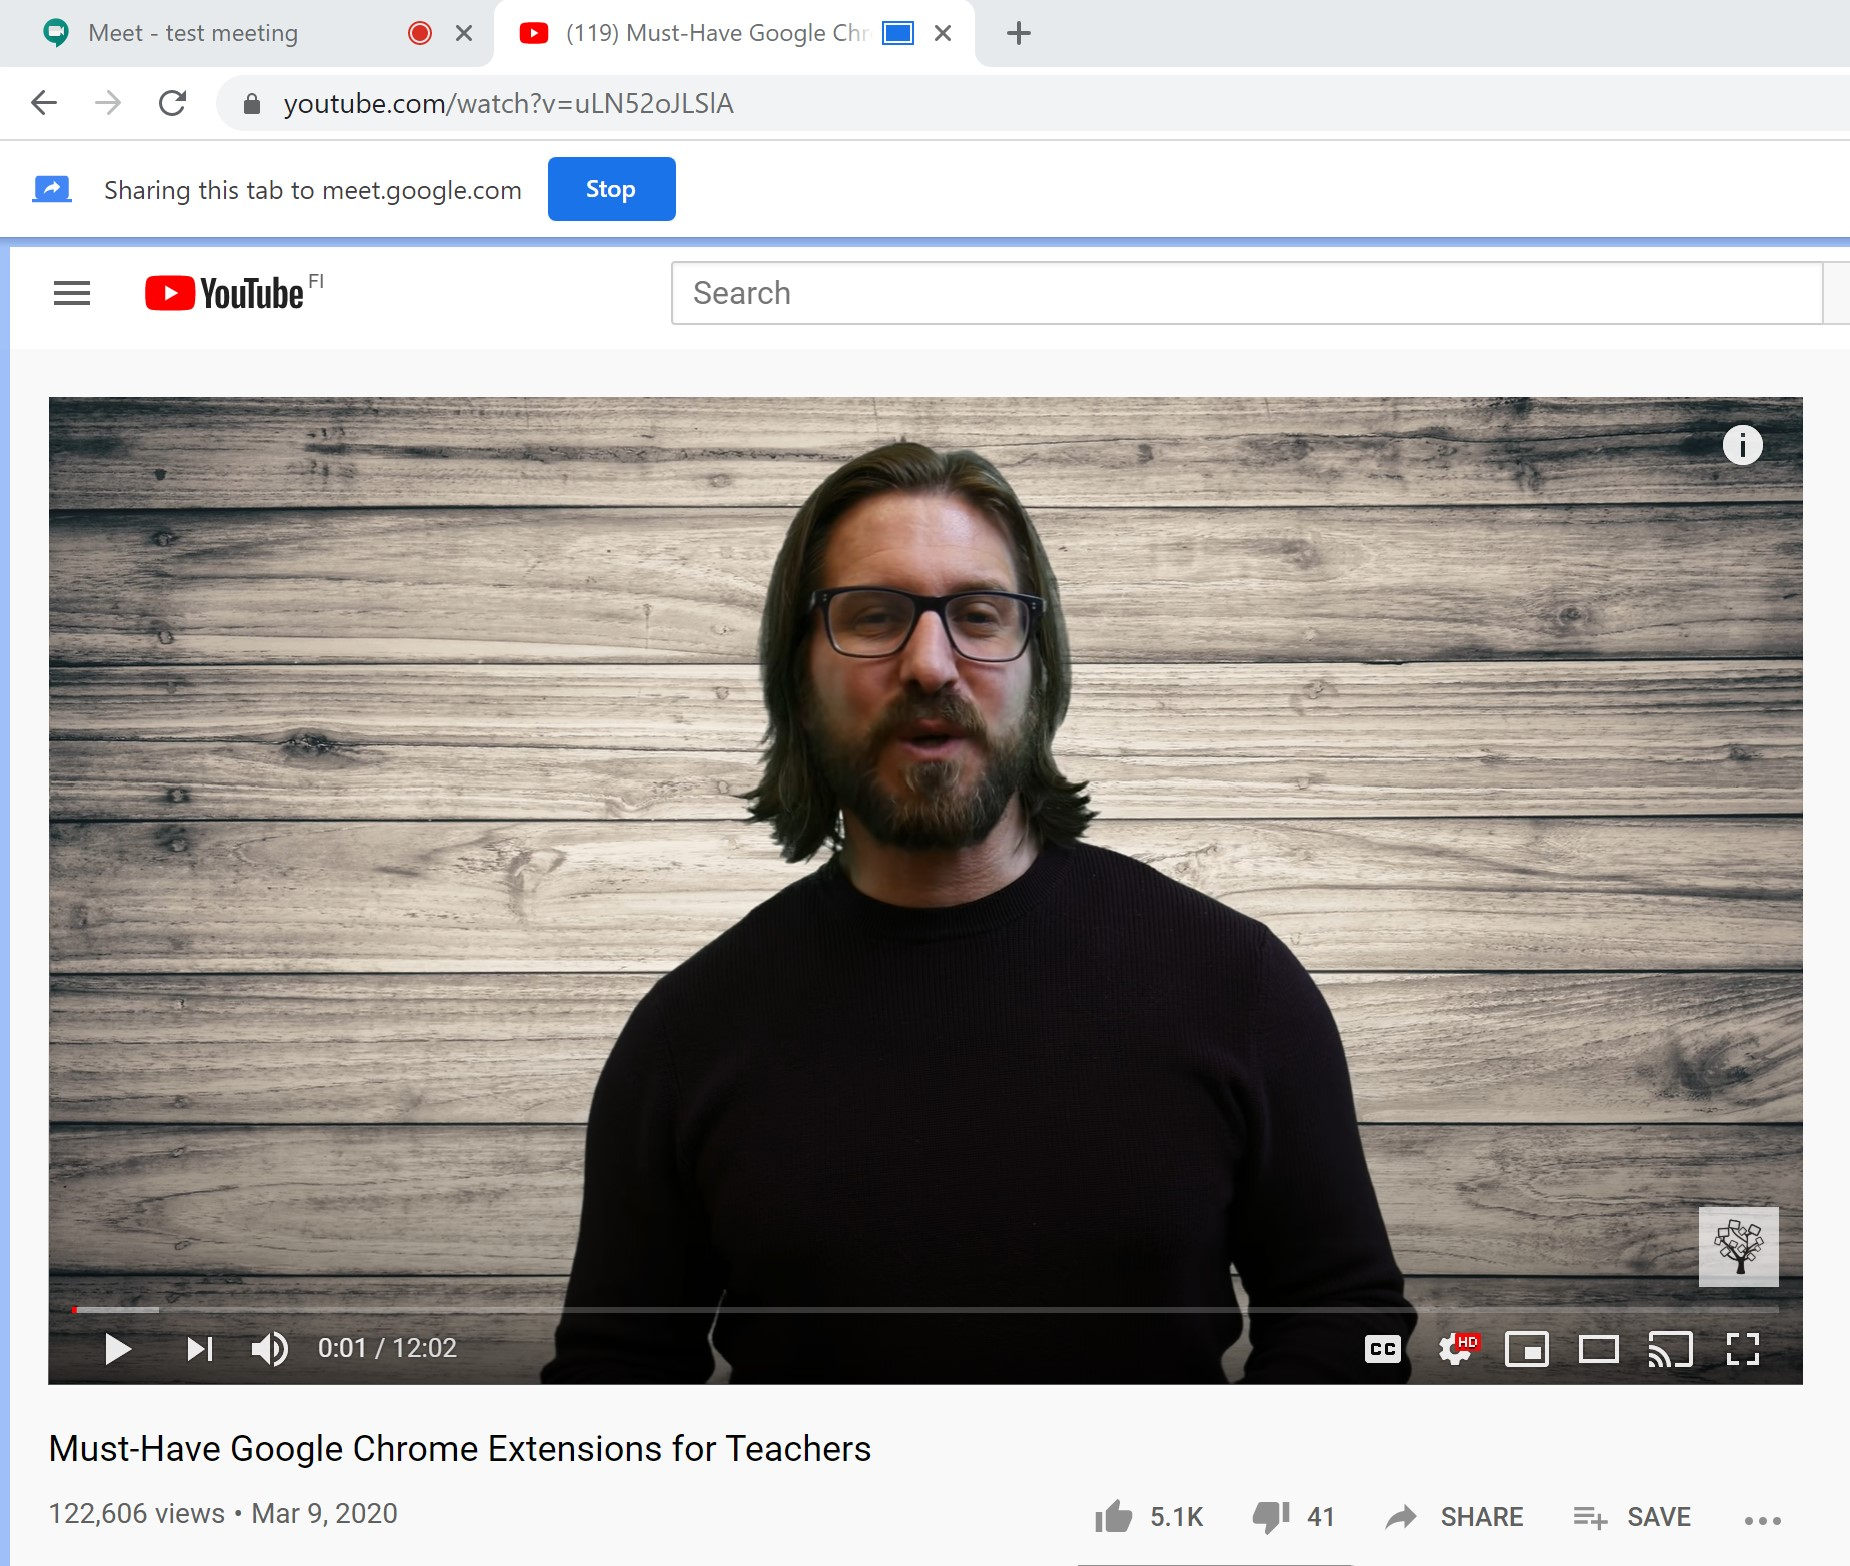 Google Meet Video quality